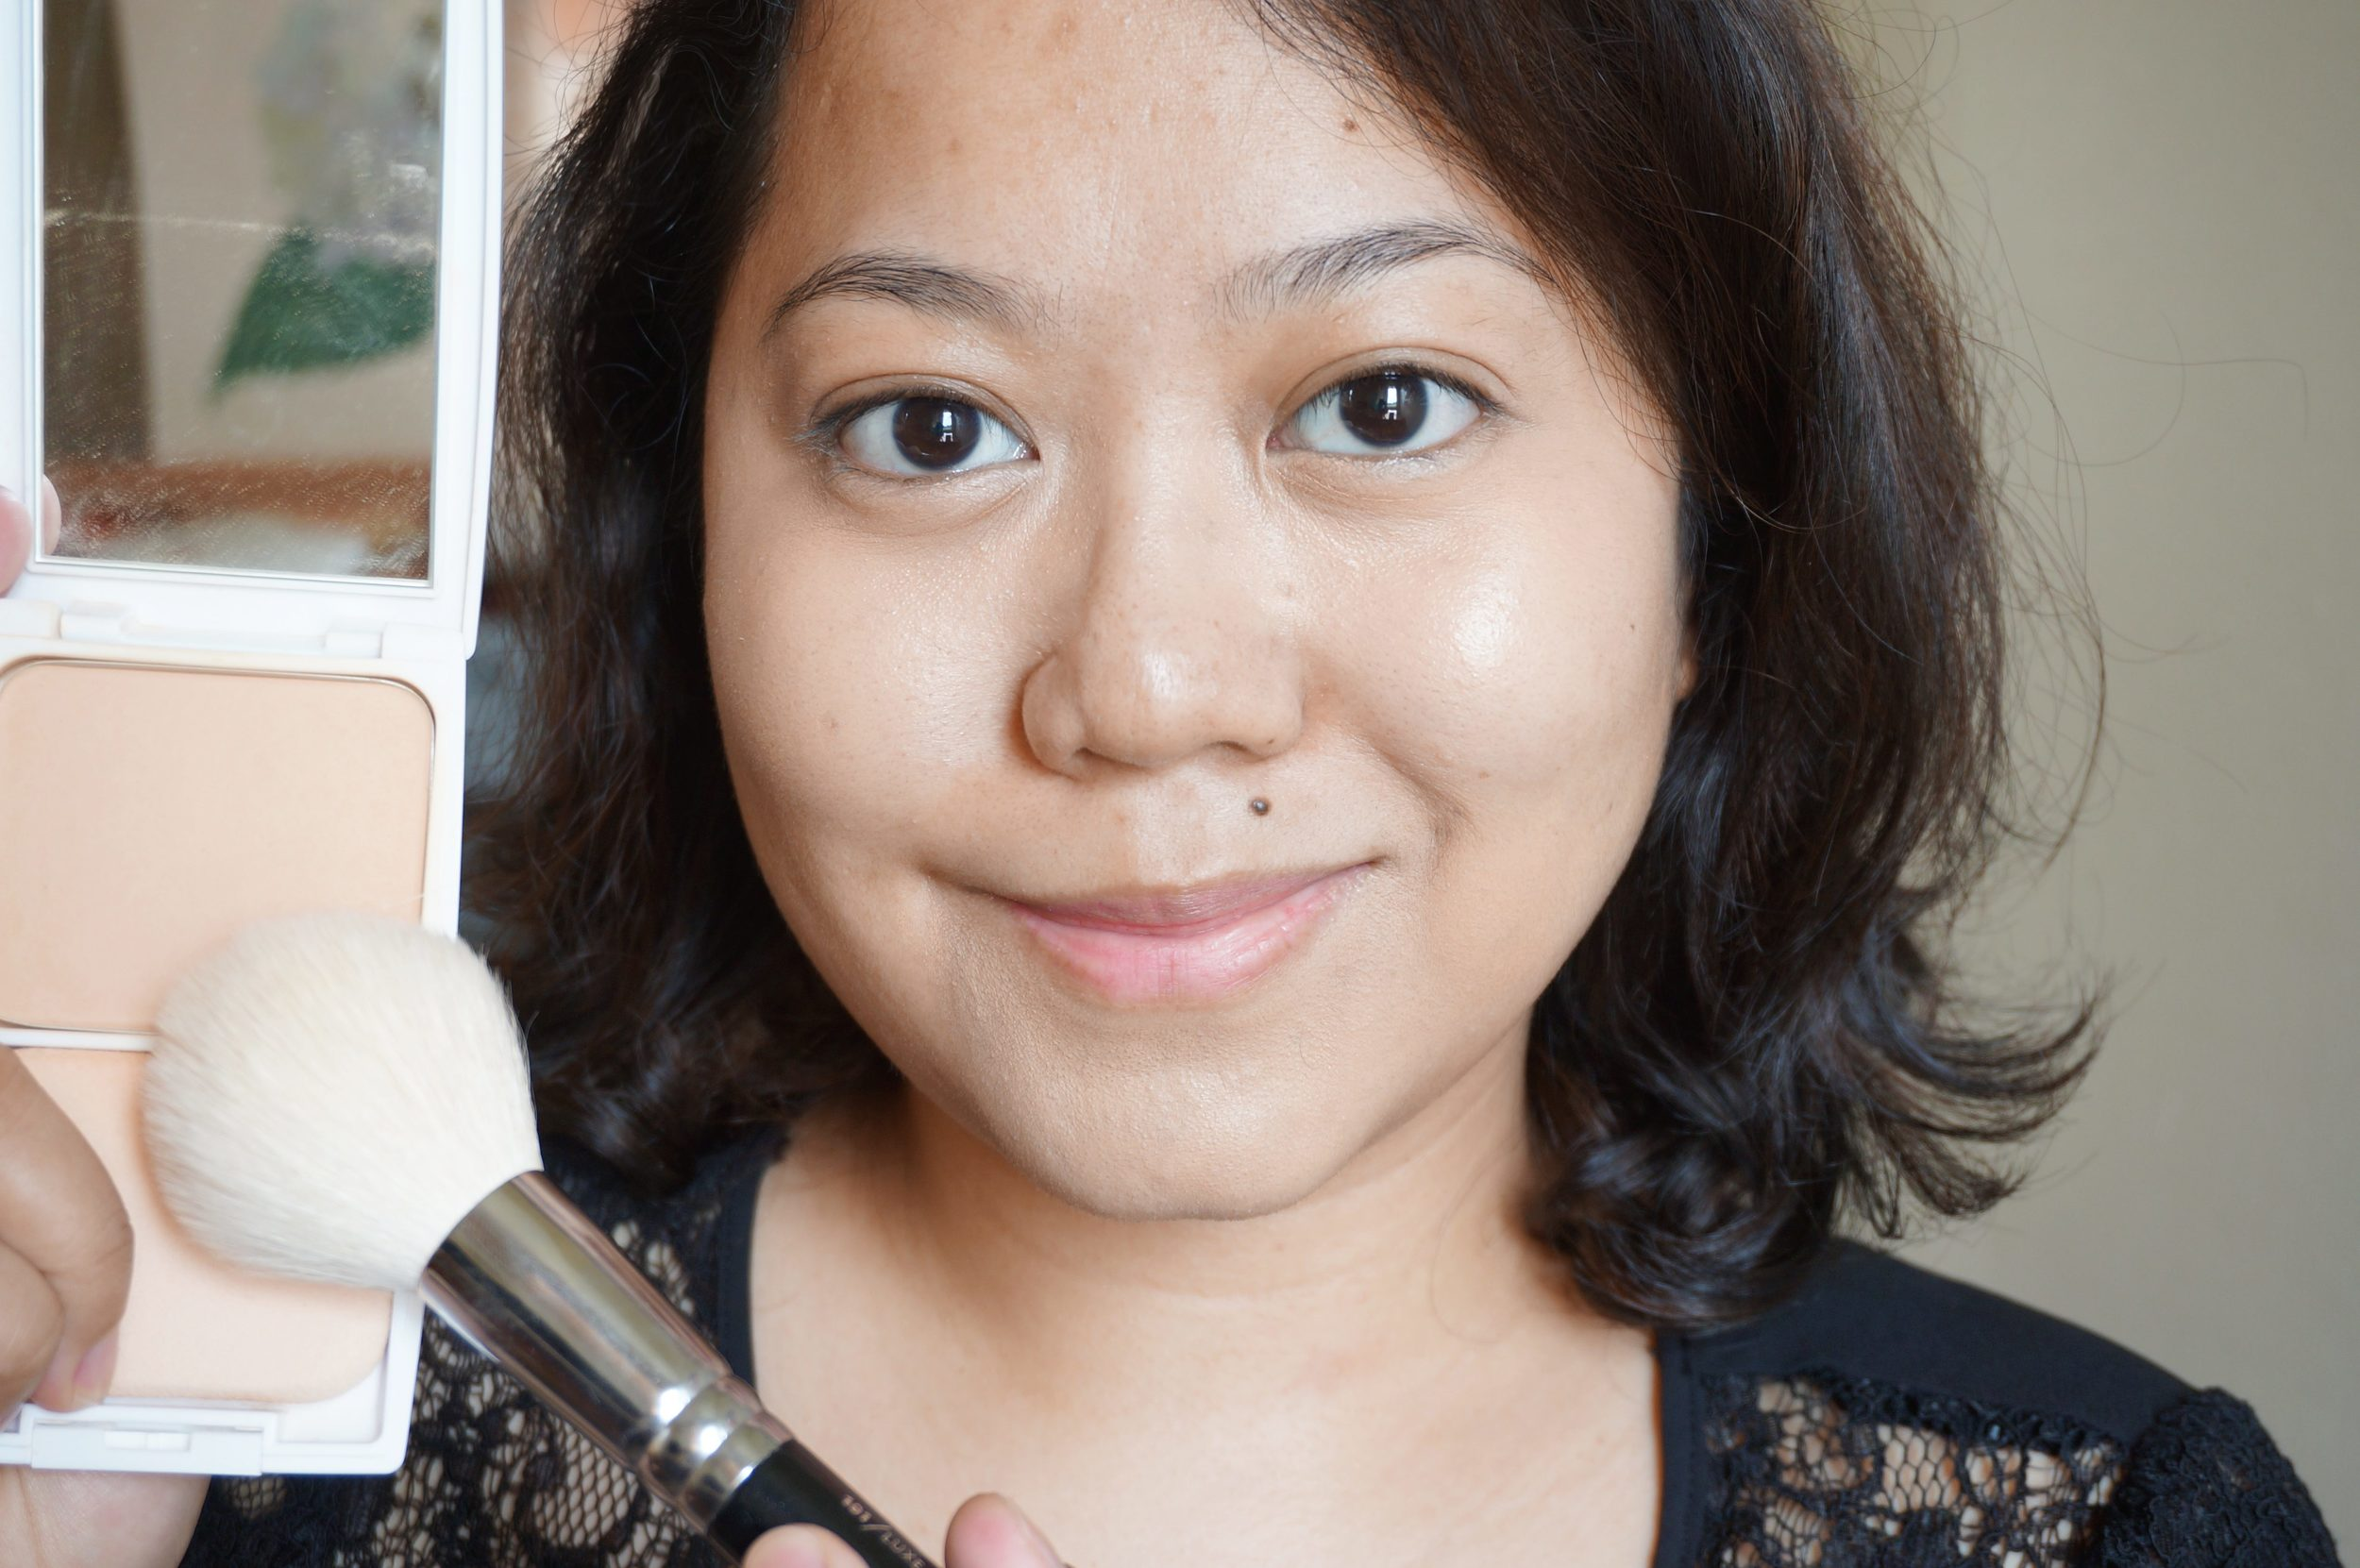 Step 2: With a fluffy powder brush, apply the Pixy Perfect Matte Cake all over your face, focusing on uneven areas. Layer only as needed! You want a fresh face, not a heavy one.